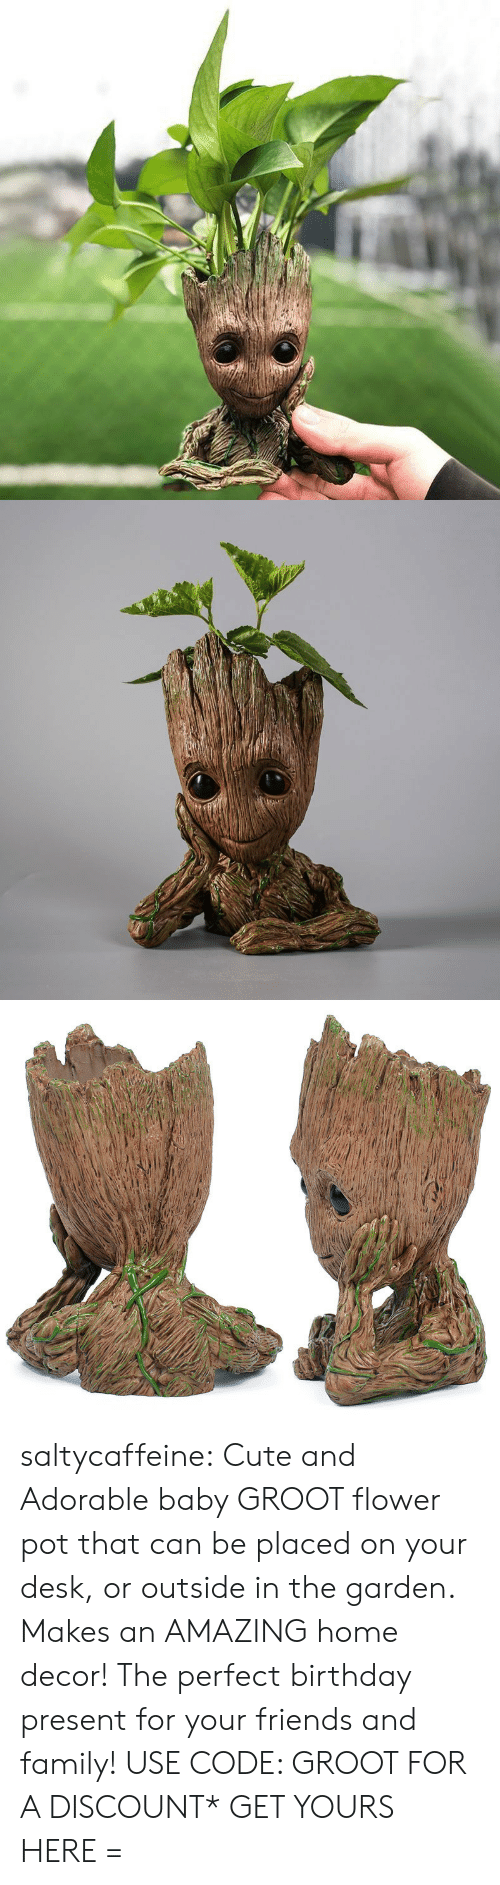 Birthday, Cute, and Family: saltycaffeine:  Cute and Adorable baby GROOT flower pot that can be placed on your desk, or outside in the garden. Makes an AMAZING home decor! The perfect birthday present for your friends and family! USE CODE: GROOT FOR A DISCOUNT* GET YOURS HERE =